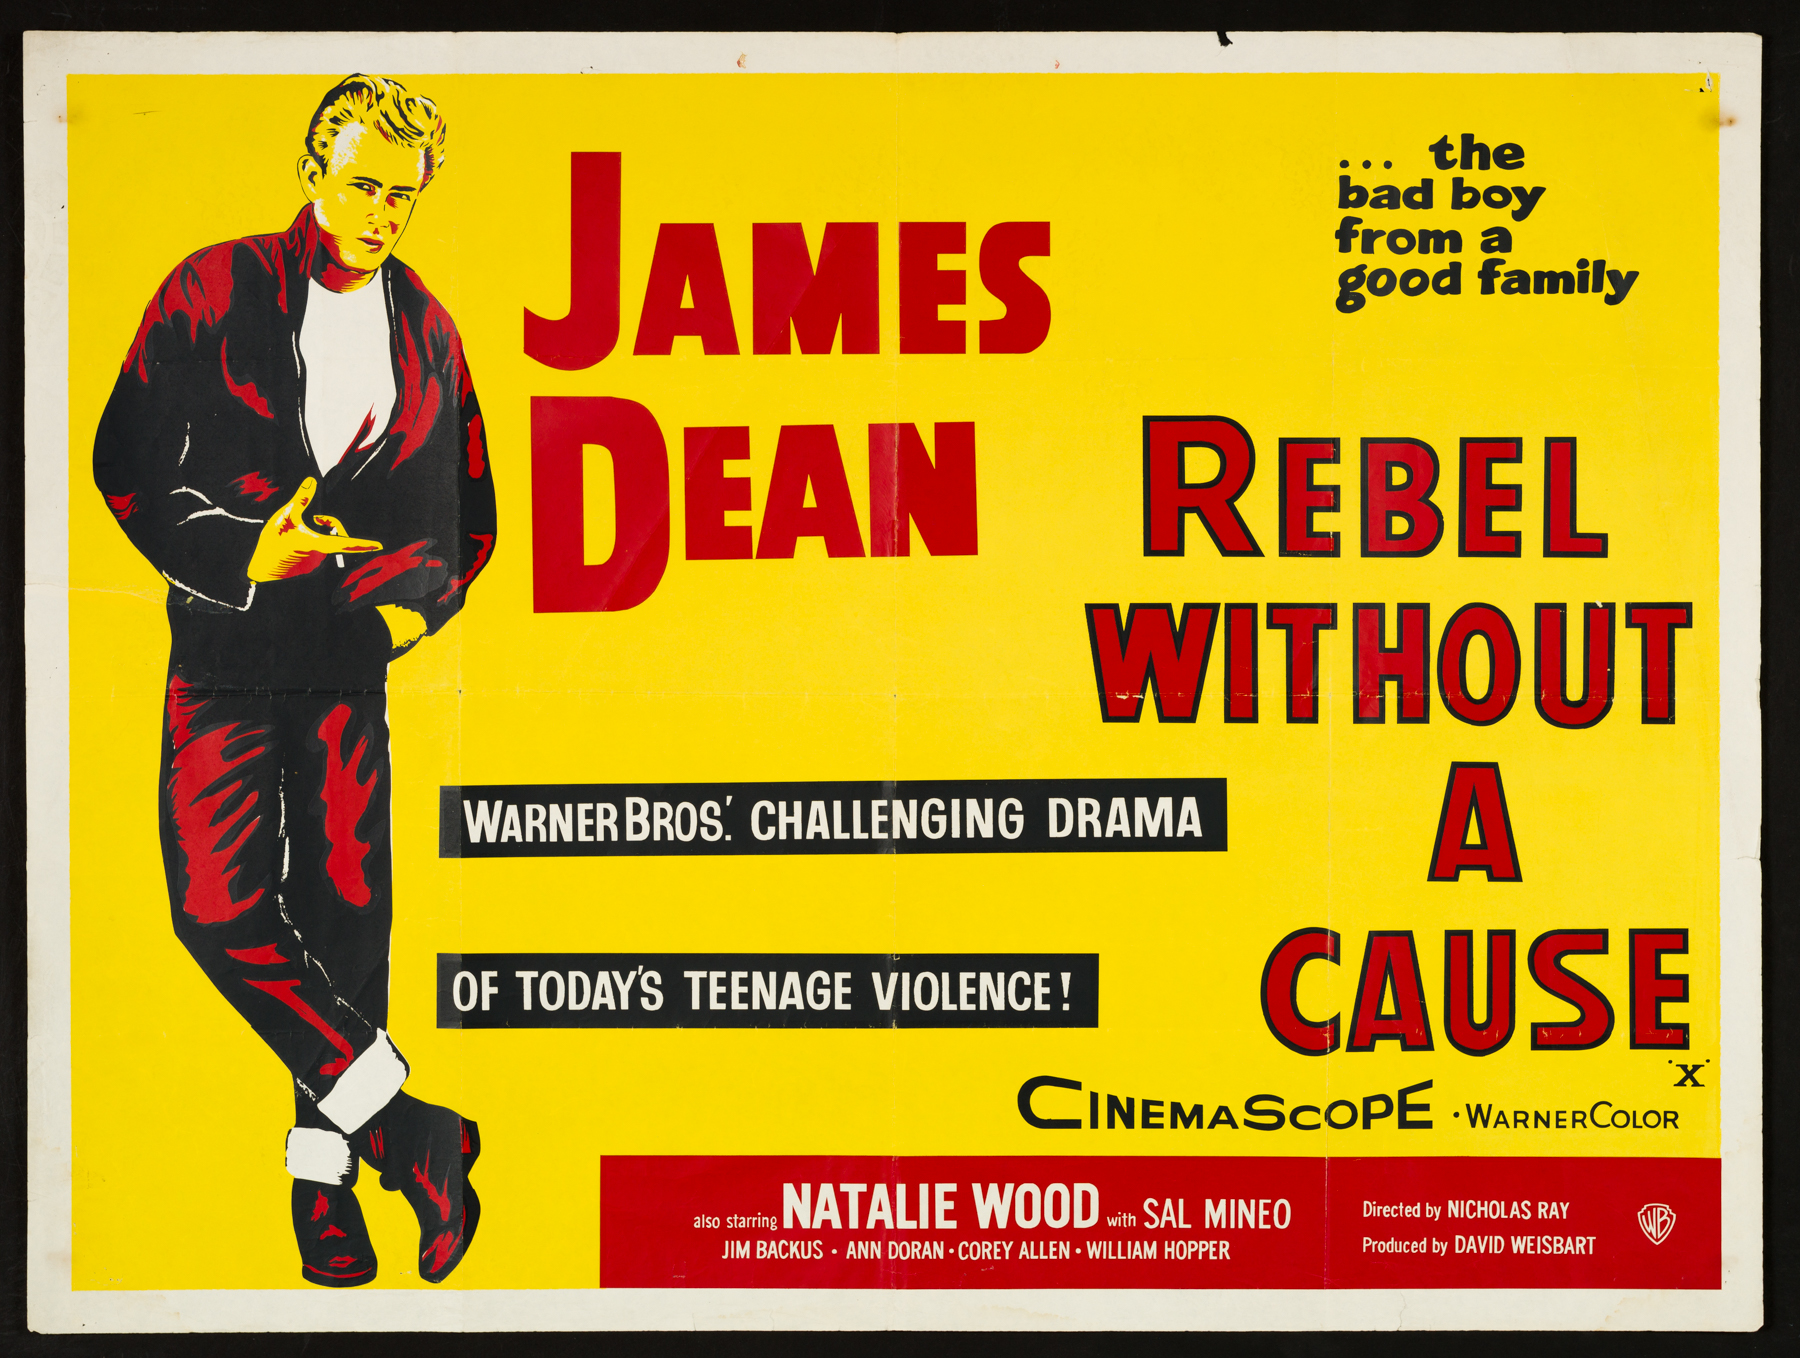 the origin of rebellious actions in rebel without a cause a movie by nicholas ray Rebel without a cause blu-ray screenshots from another edition of rebel without a cause blu-ray story of rebellious middle-class teens nicholas ray starring.